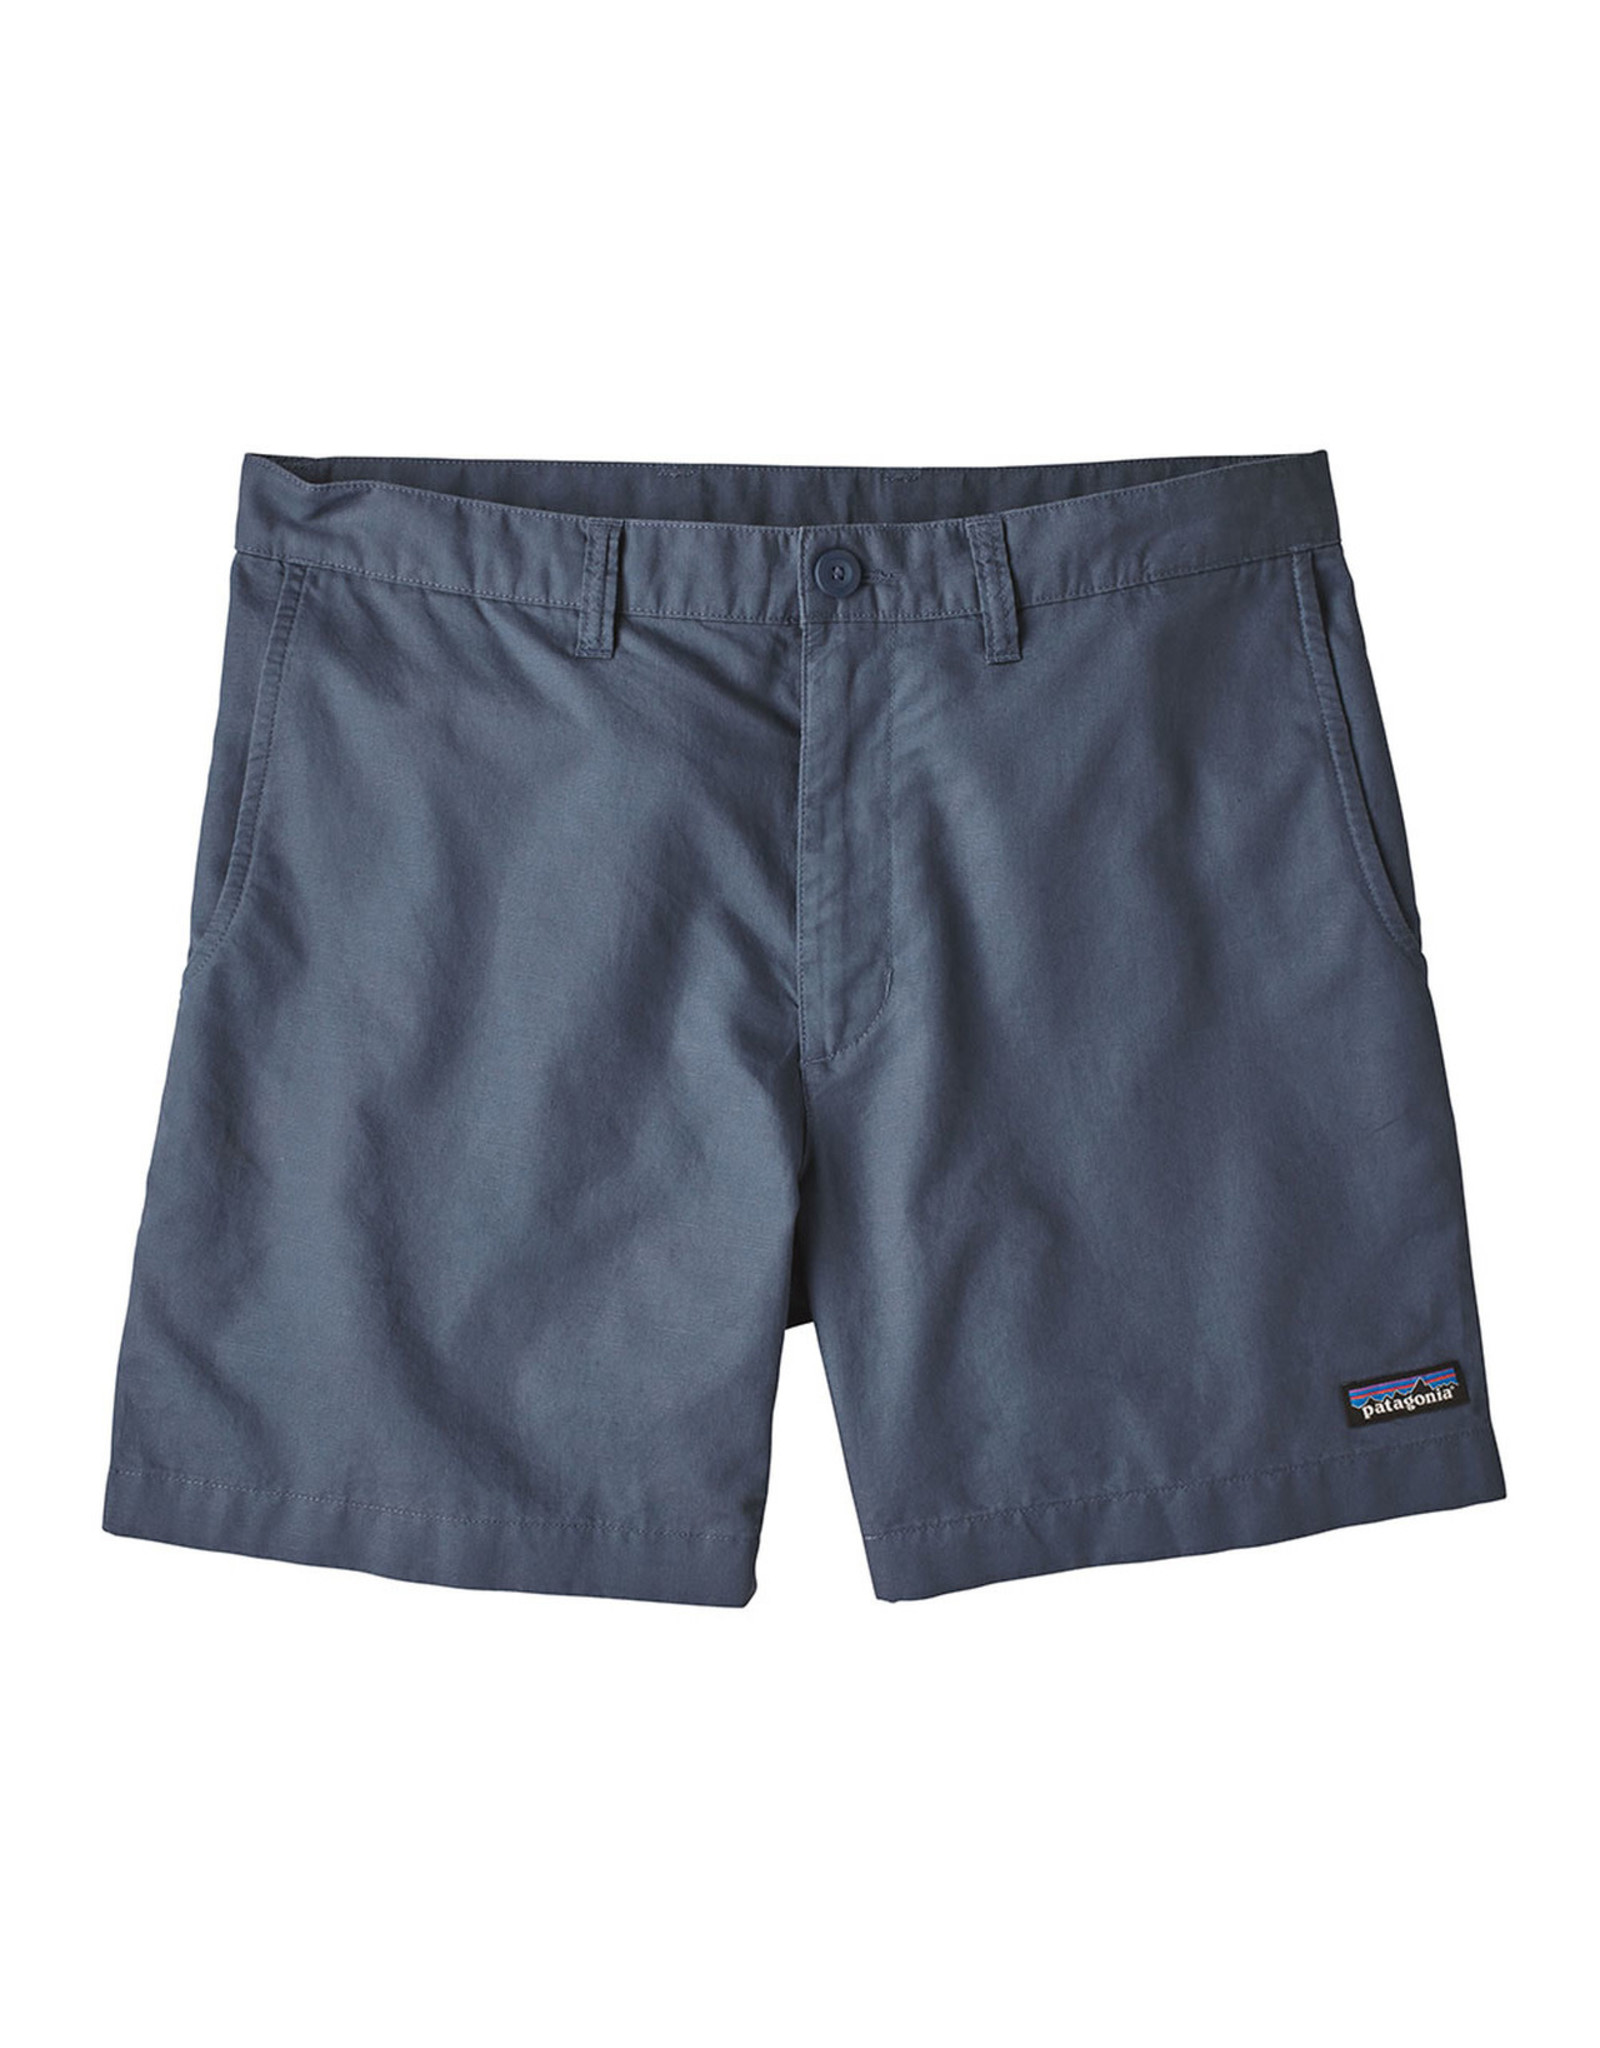 Patagonia M's LW All-Wear Hemp Shorts - 6 in.